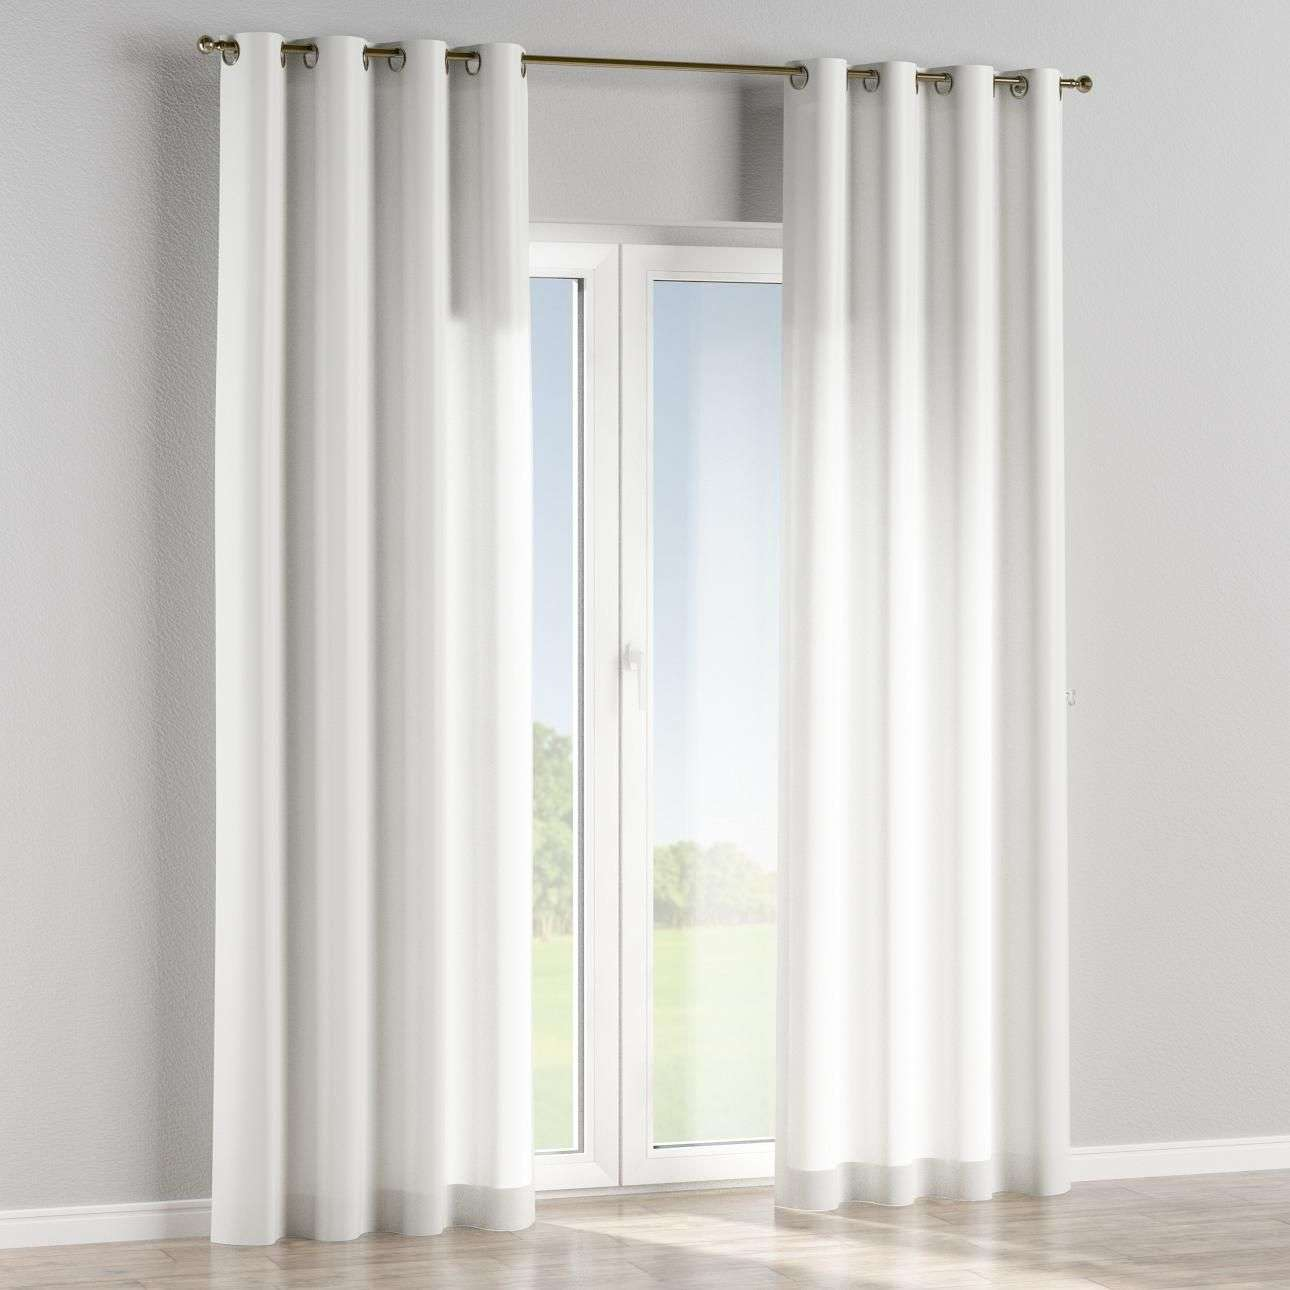 Eyelet lined curtains in collection Cardiff, fabric: 136-21